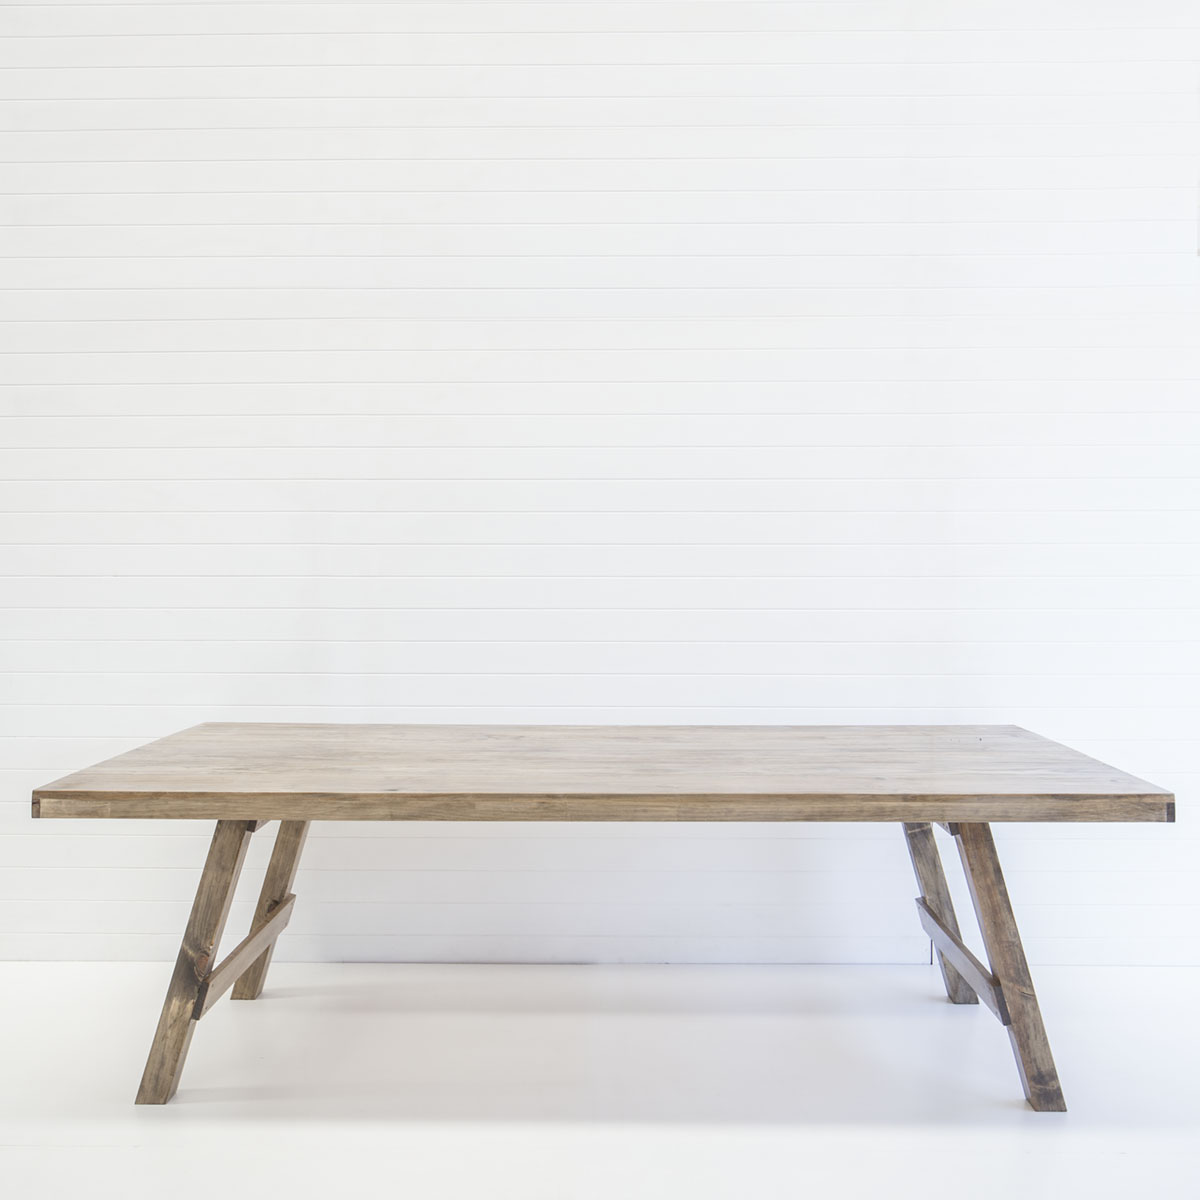 TIMBER FEASTING TABLES